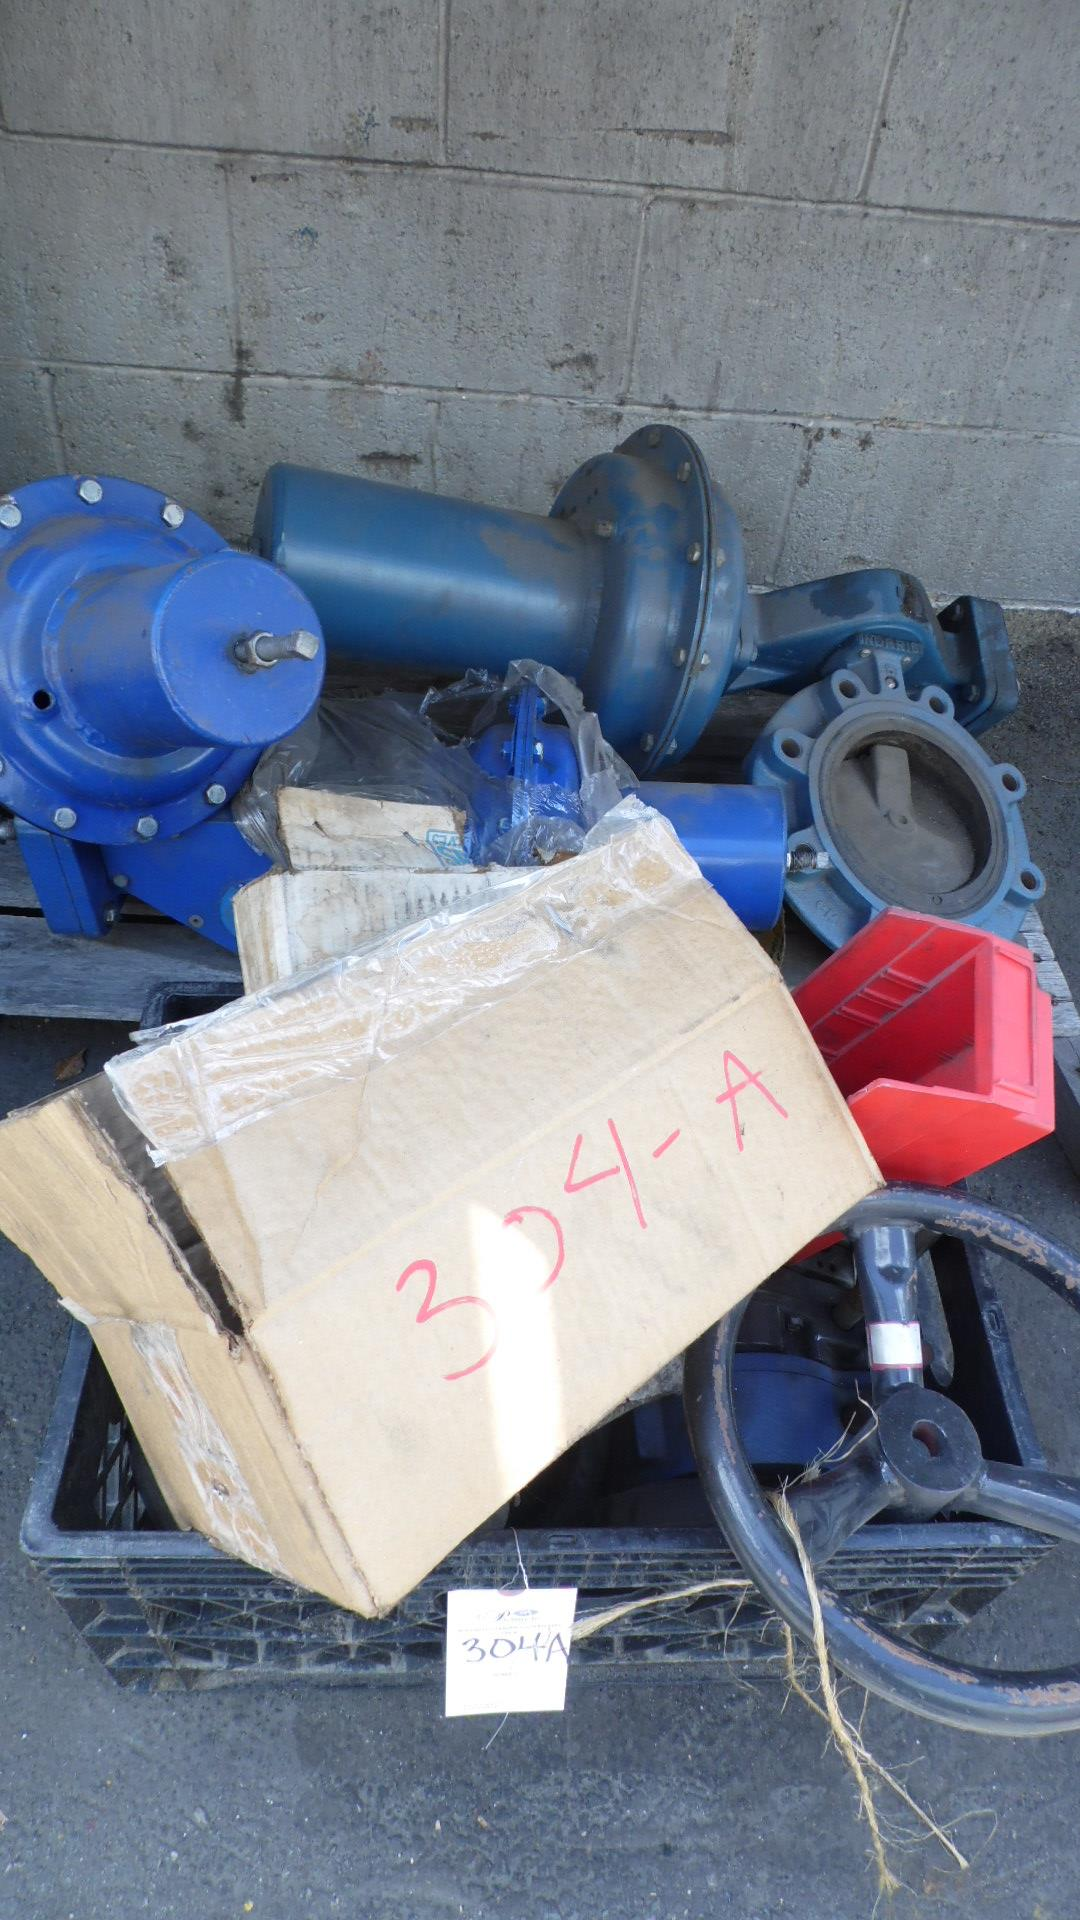 """Lot 304A - 1- 6"""" NORRIS BUTTERFLY w/ ACTUATOR, 1- 4"""" NORRISEAL BUTTERFLY w/ ACTUATOR,"""